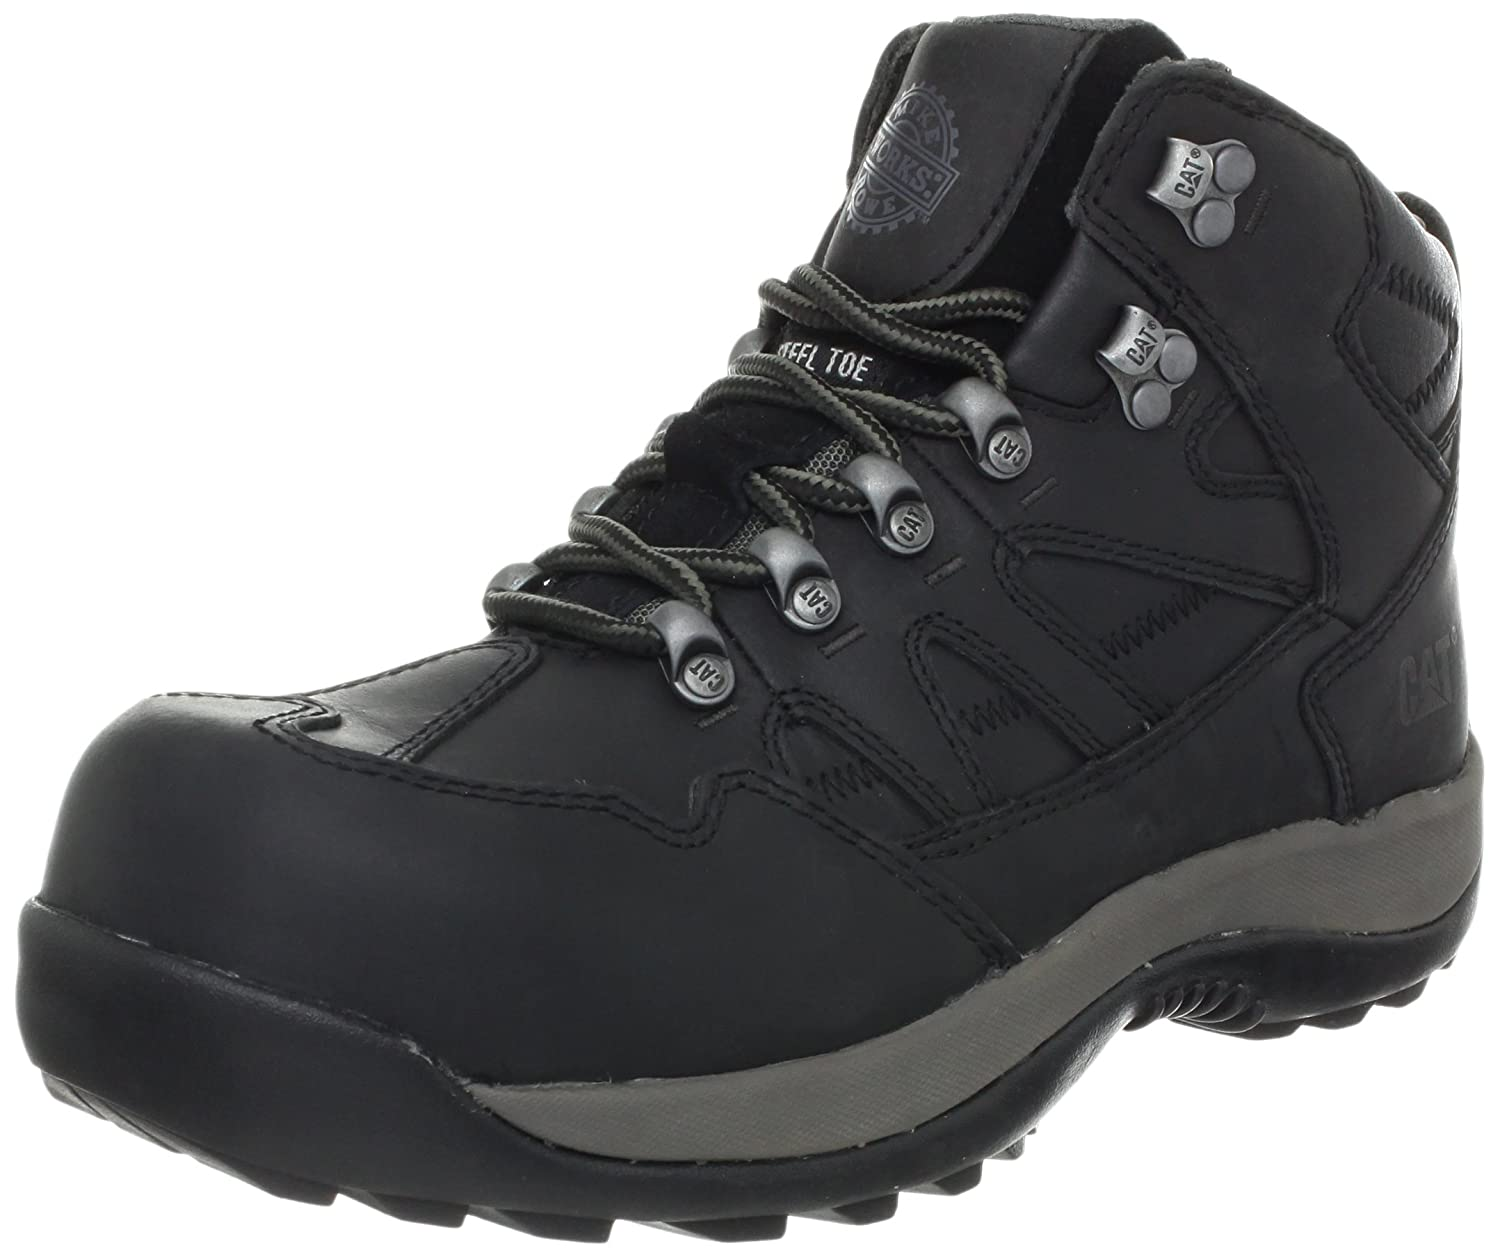 Caterpillar Men 's鉄筋Mr Steel Toe Work Boot B007H3VXTA 11.5 D(M) US|Black/Pepper Black/Pepper 11.5 D(M) US